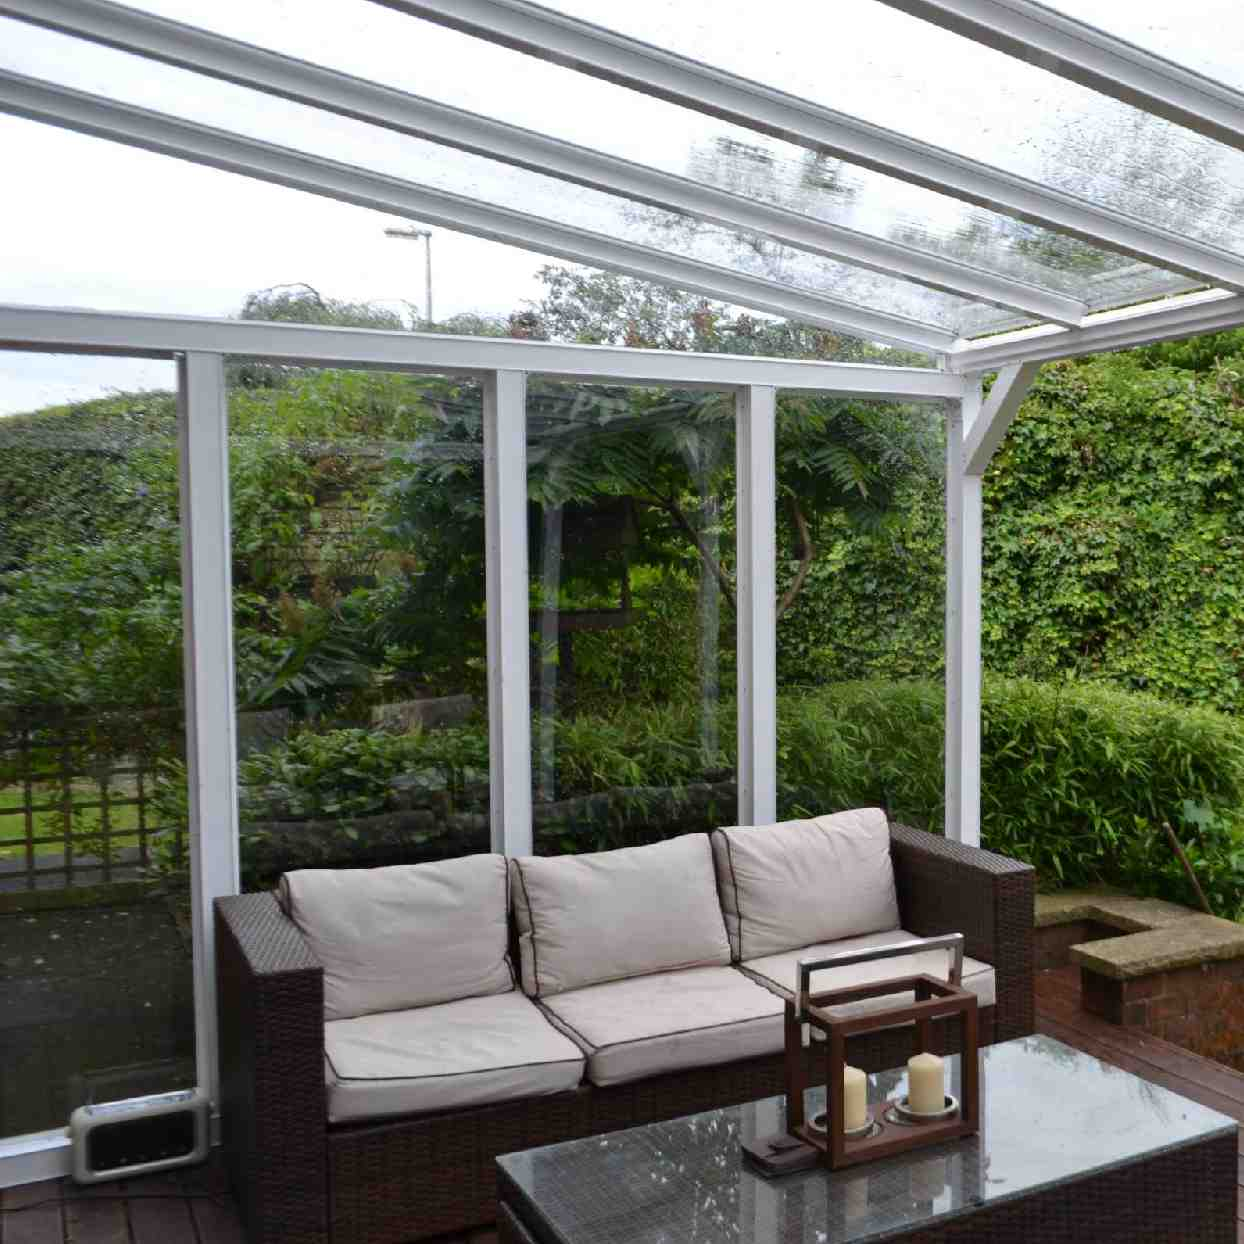 Buy Omega Verandah with 6mm Glass Clear Plate Polycarbonate Glazing - 3.5m (W) x 3.0m (P), (3) Supporting Posts online today